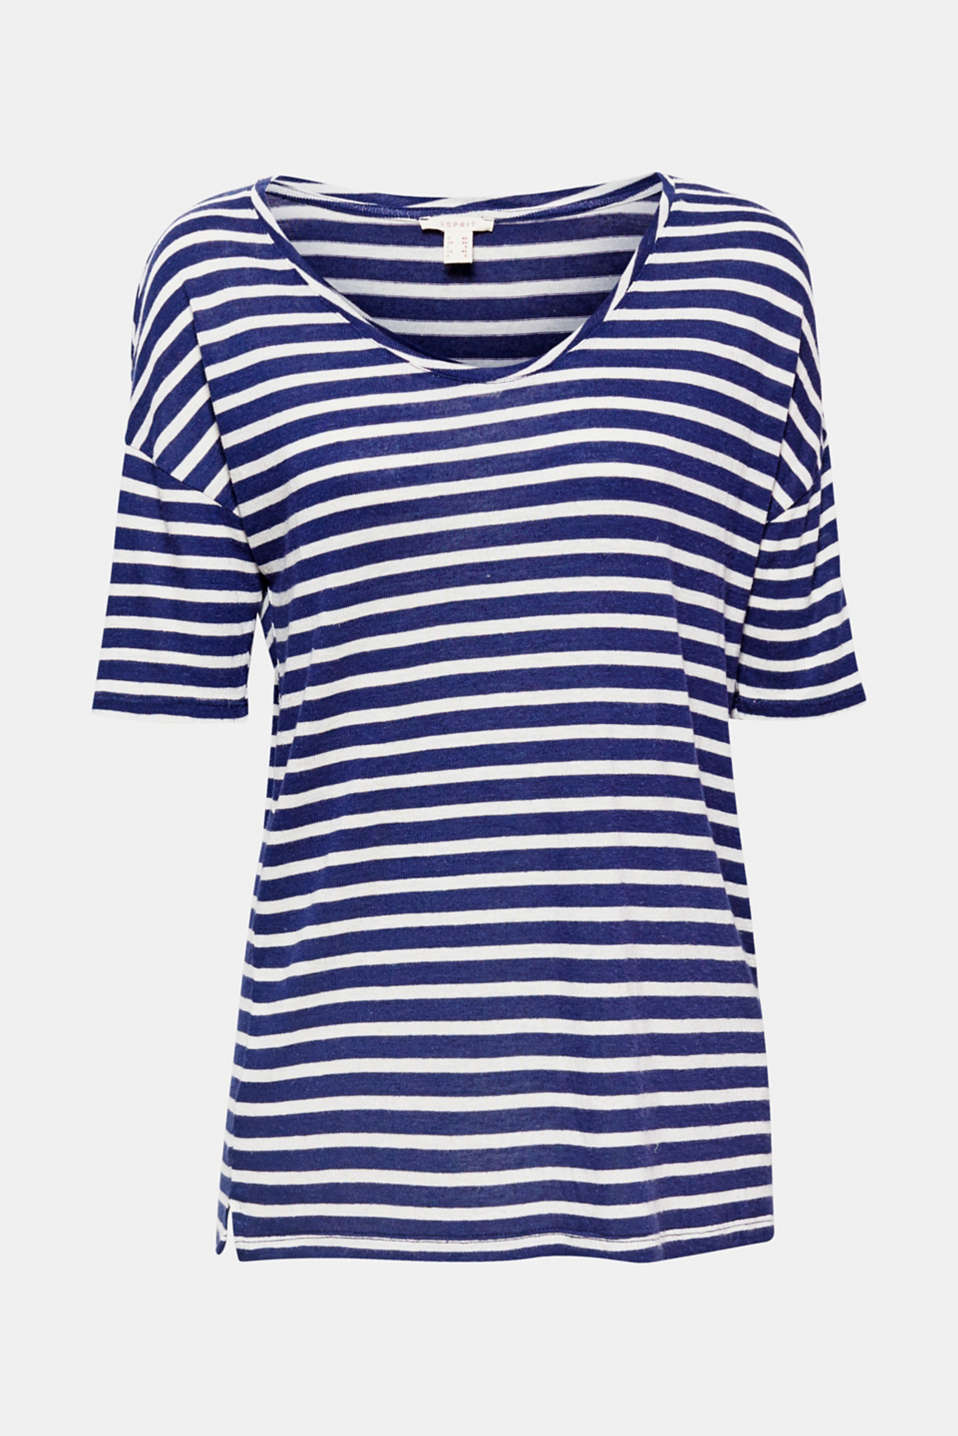 Softly draped, soft on the skin: this casual striped top with airy linen will instantly enchant you with its look and comfort!